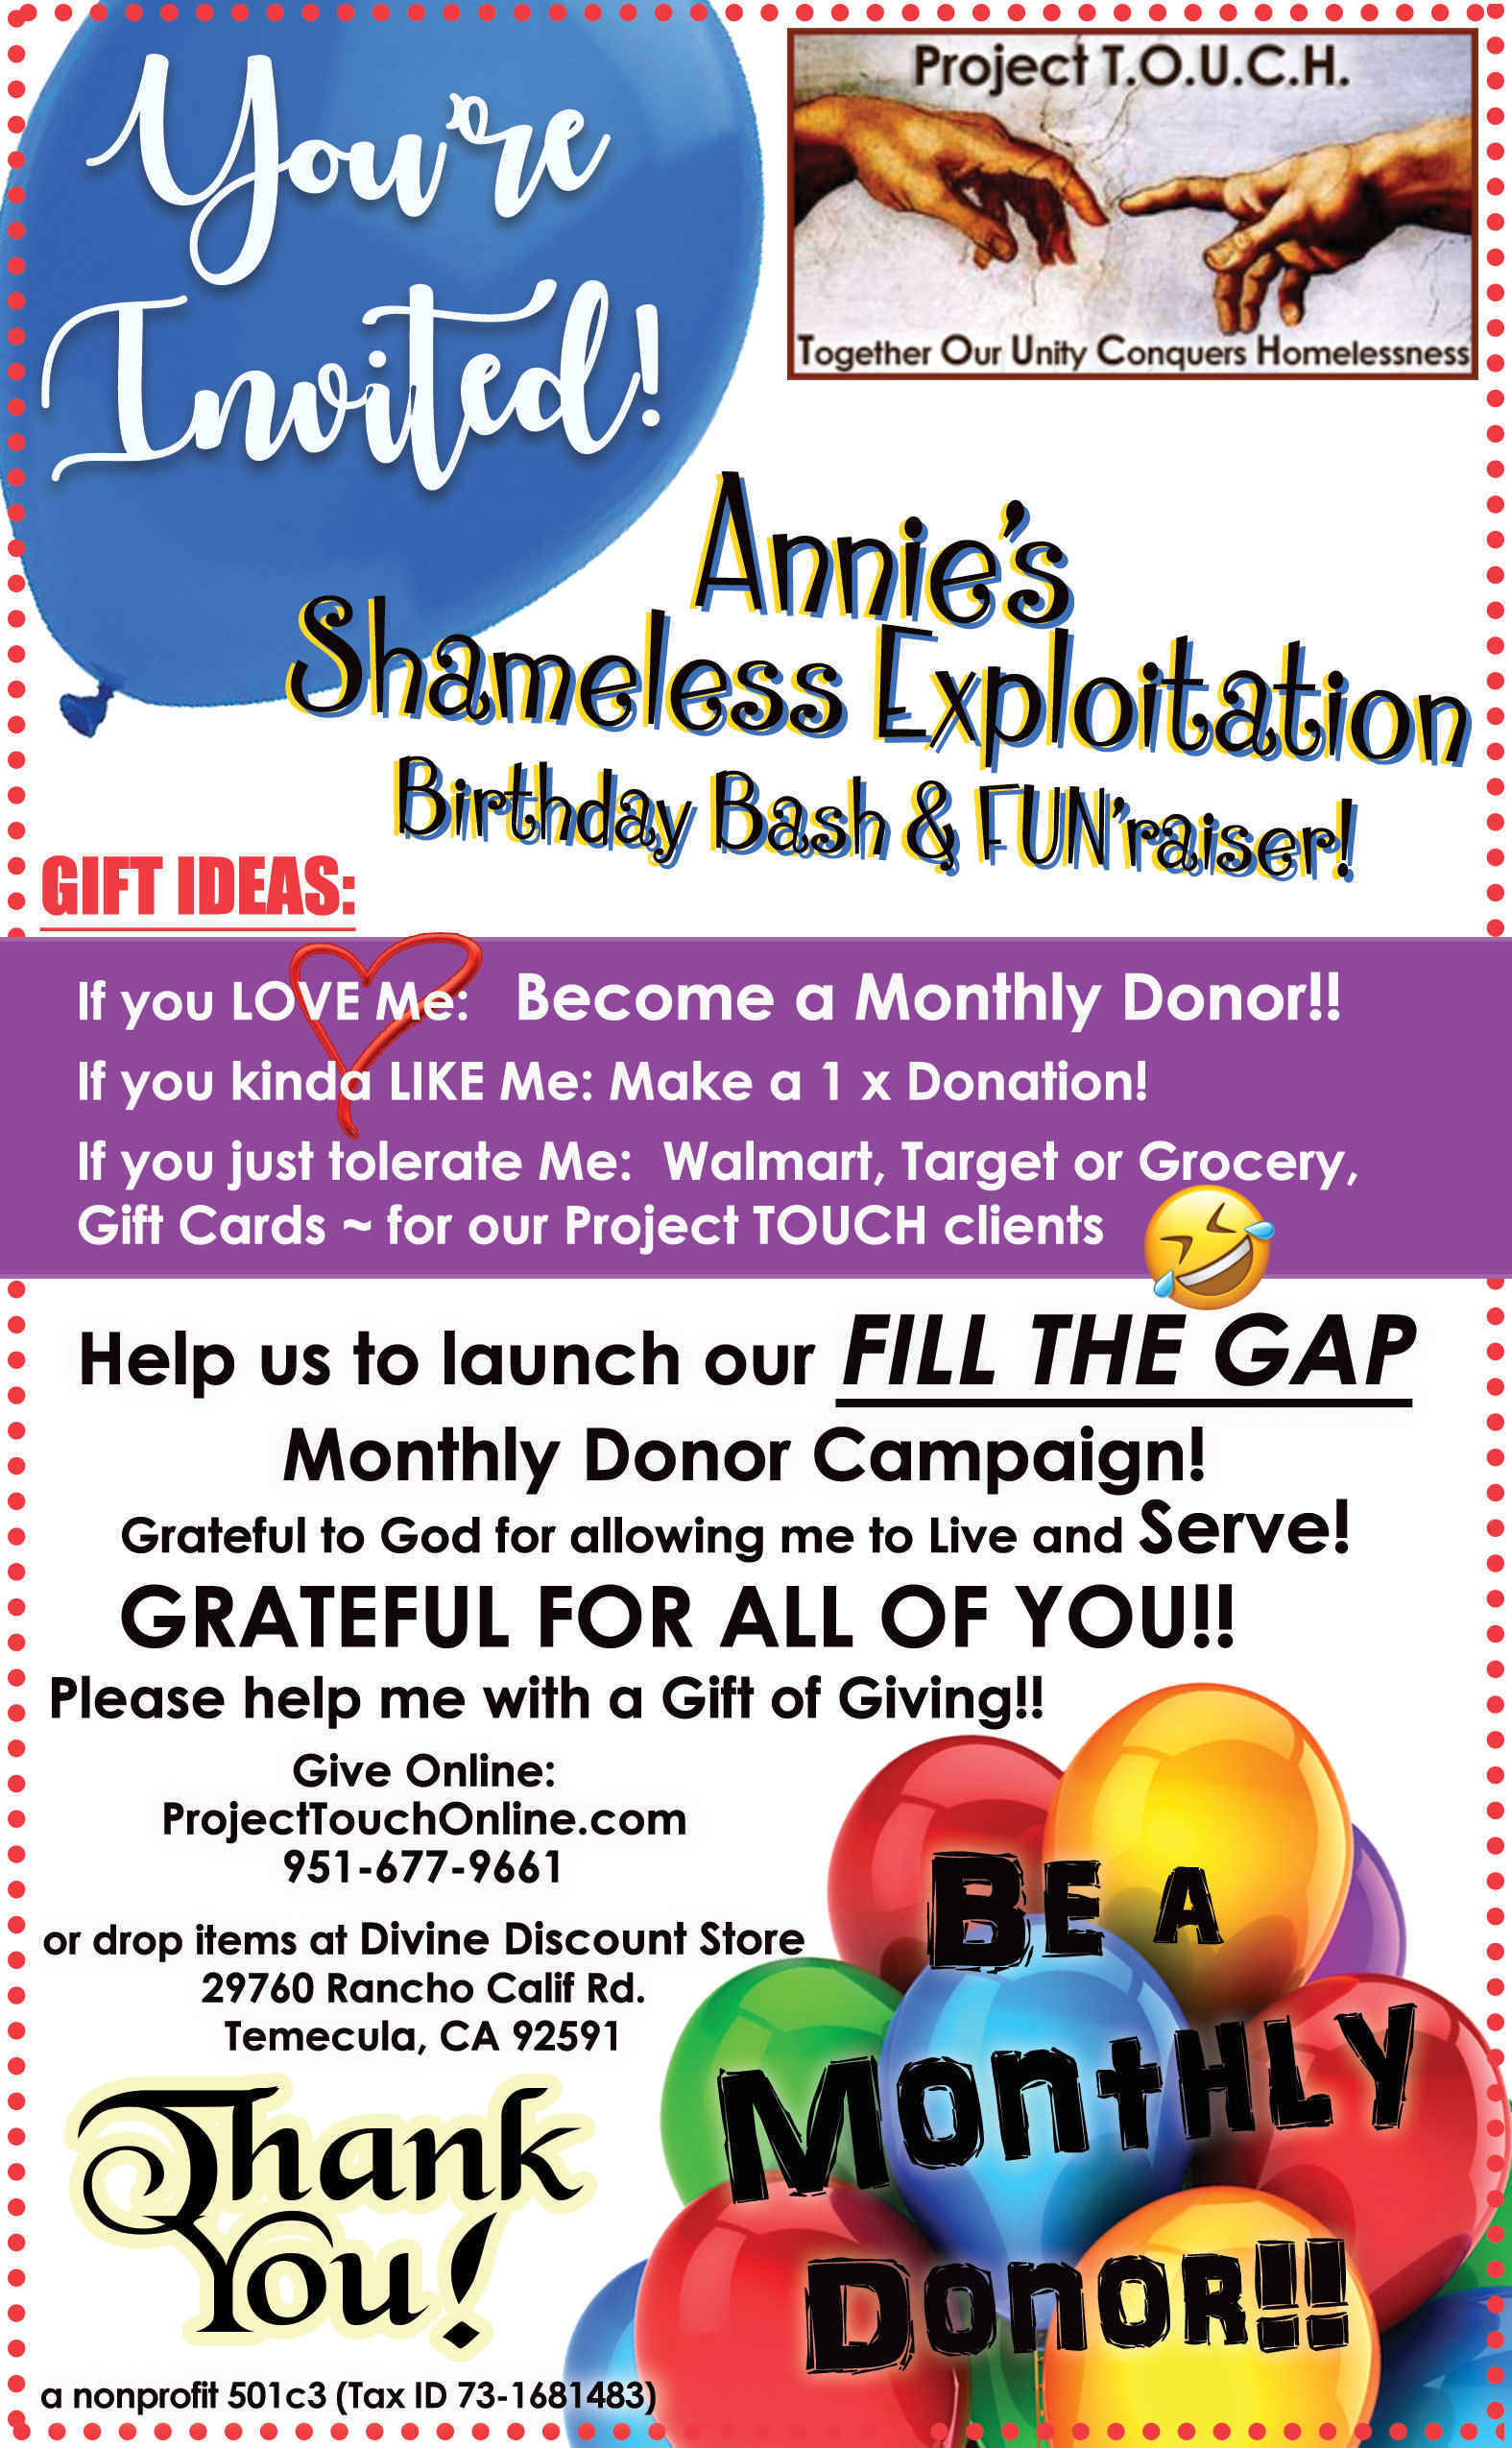 Help Me Celebrate - Become a Monthly Donor!! image